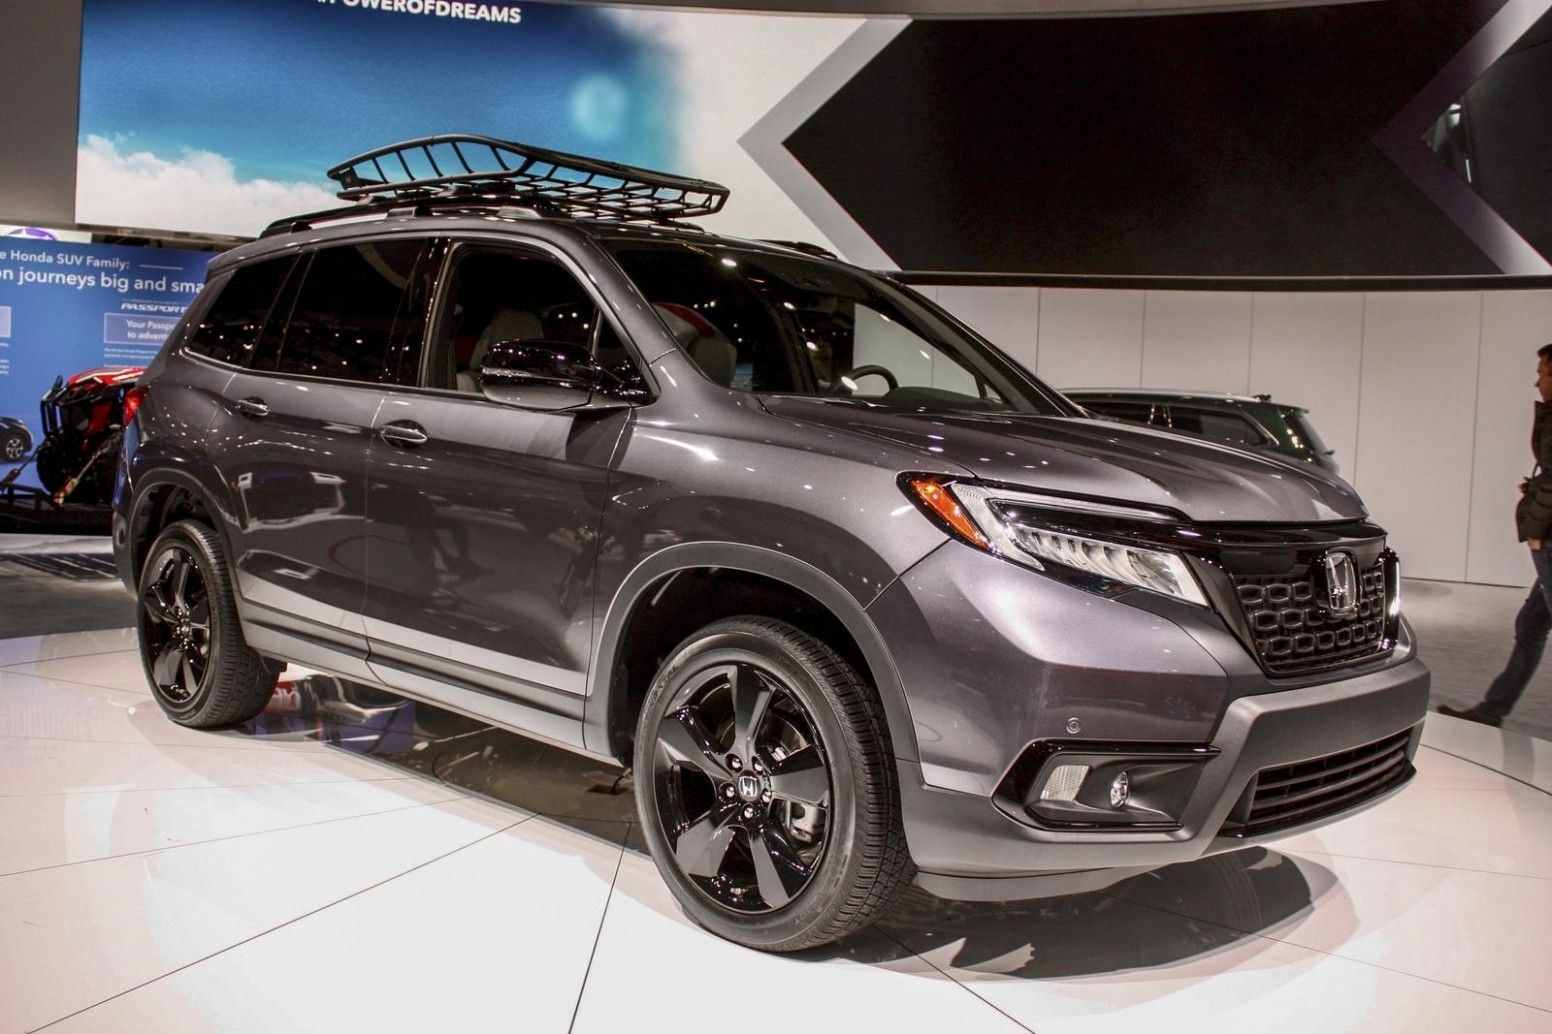 2020 Honda Passport Sport Honda Passport Honda Mercedes Electric